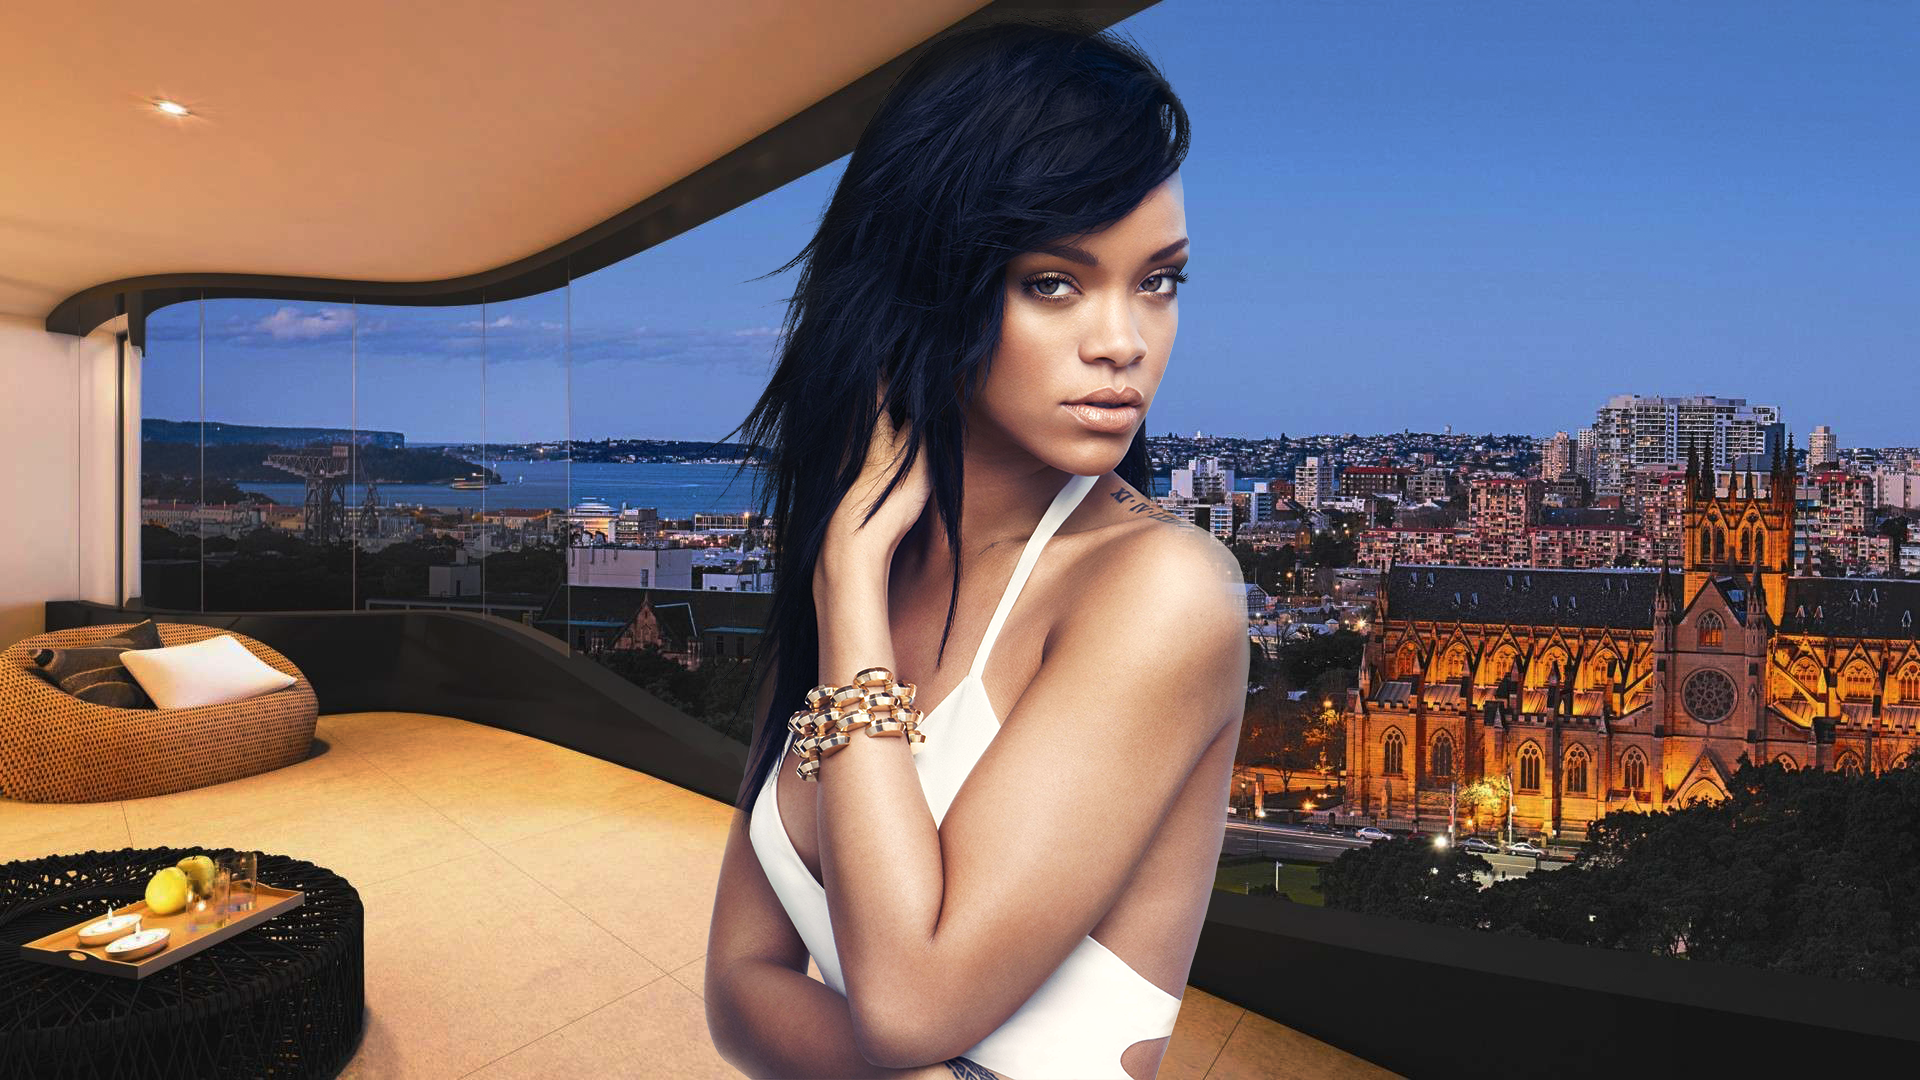 Rihanna Wallpaper HD by maarcopngs on DeviantArt